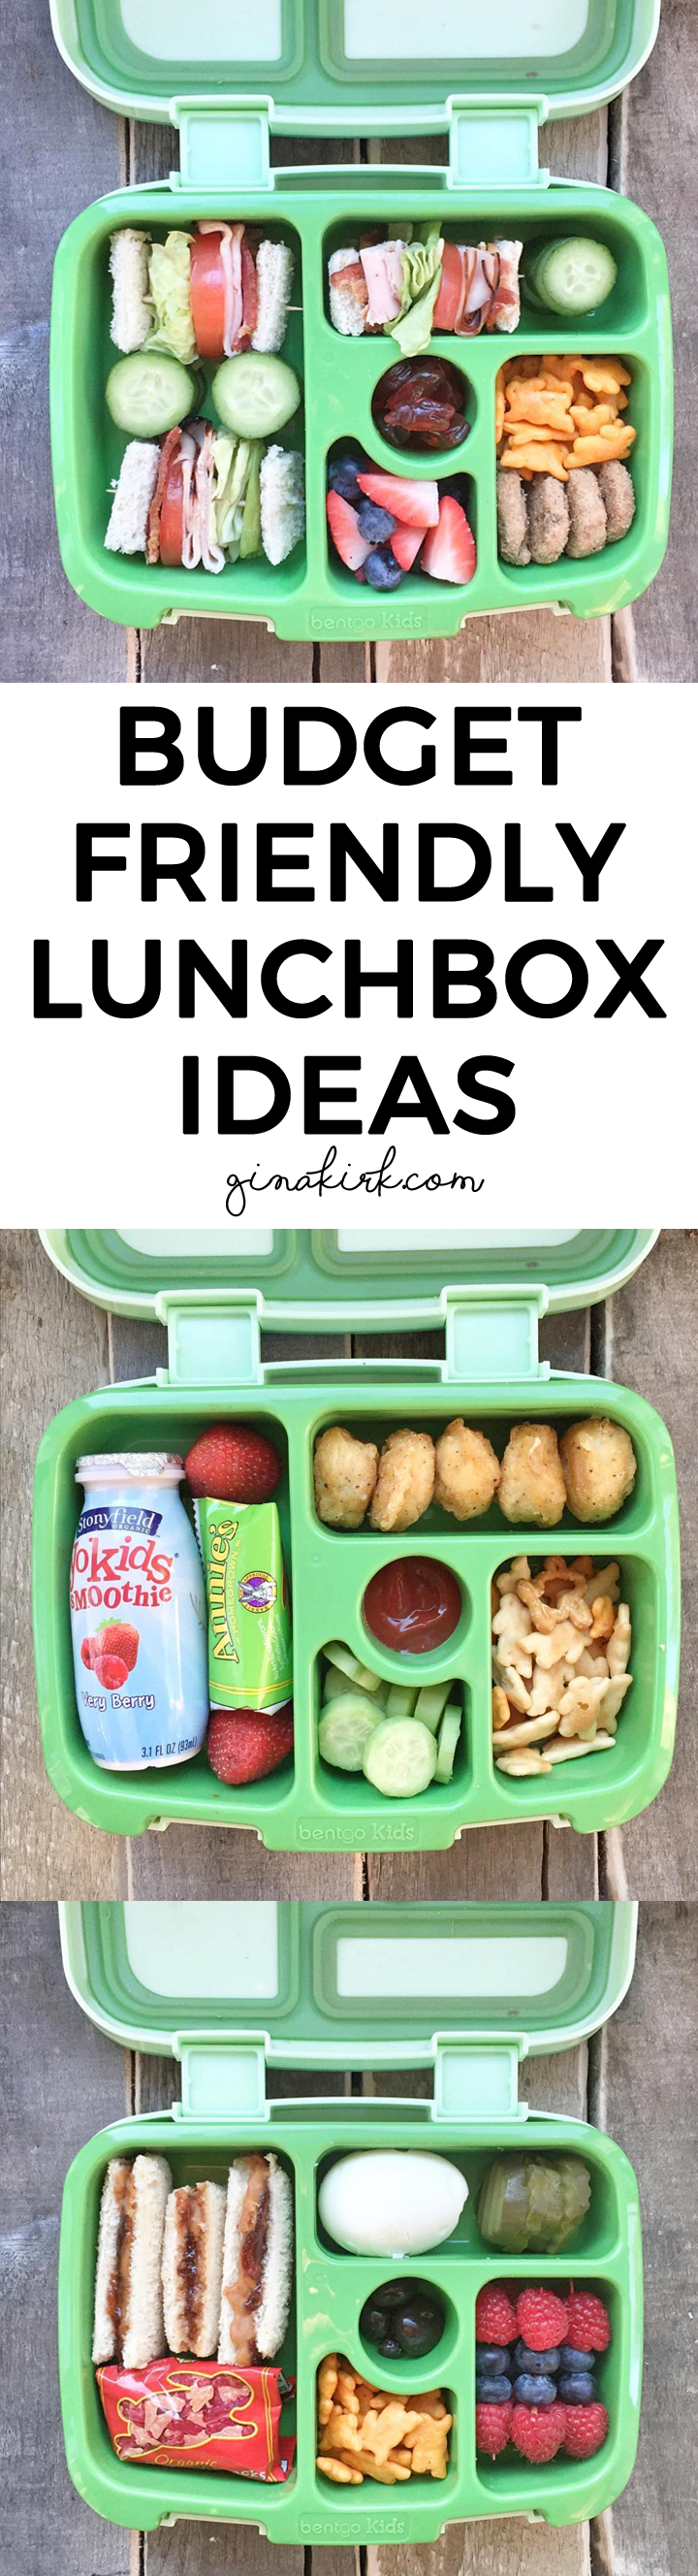 Budget friendly lunchbox ideas - GinaKirk.com - @ginaekirk